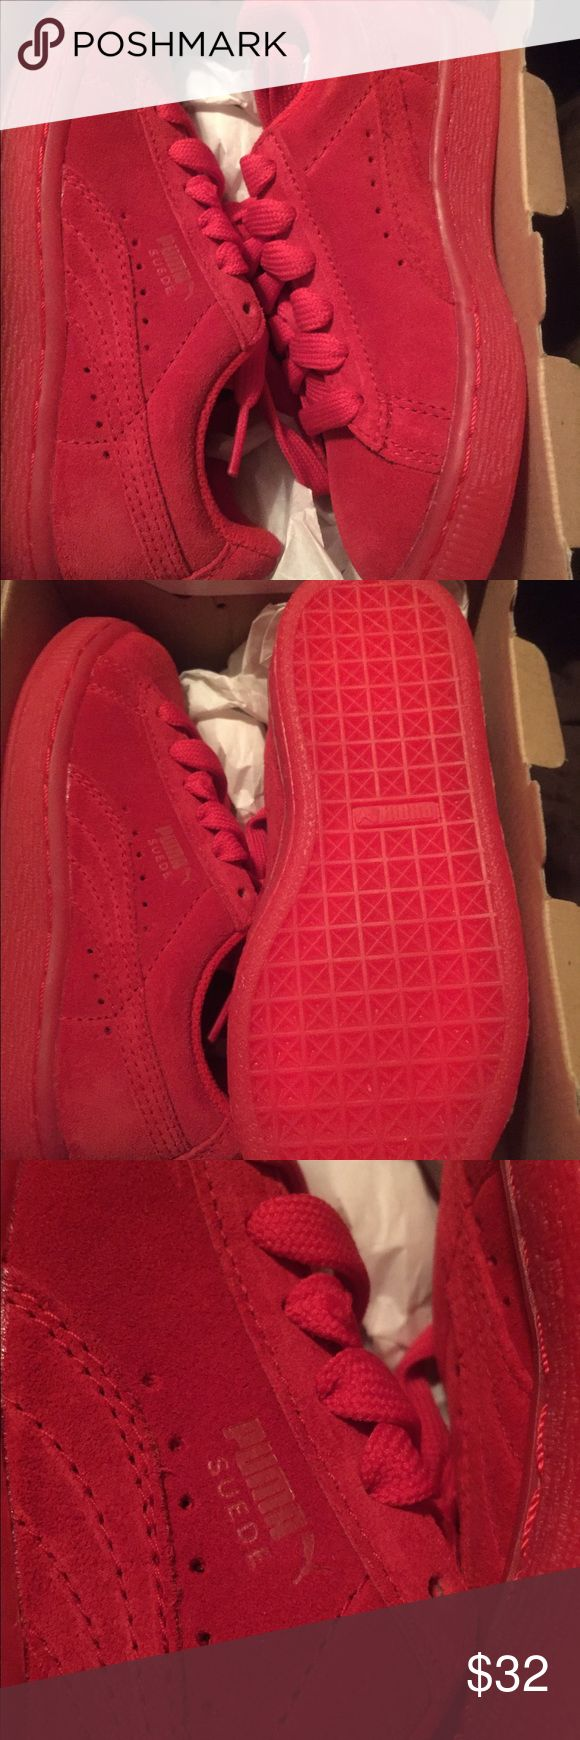 Puma Suede kids shoes Puma sued sneakers Beautiful RED color. Never worn brand new. Unisex shoes for girl or boy. Puma Shoes Sneakers